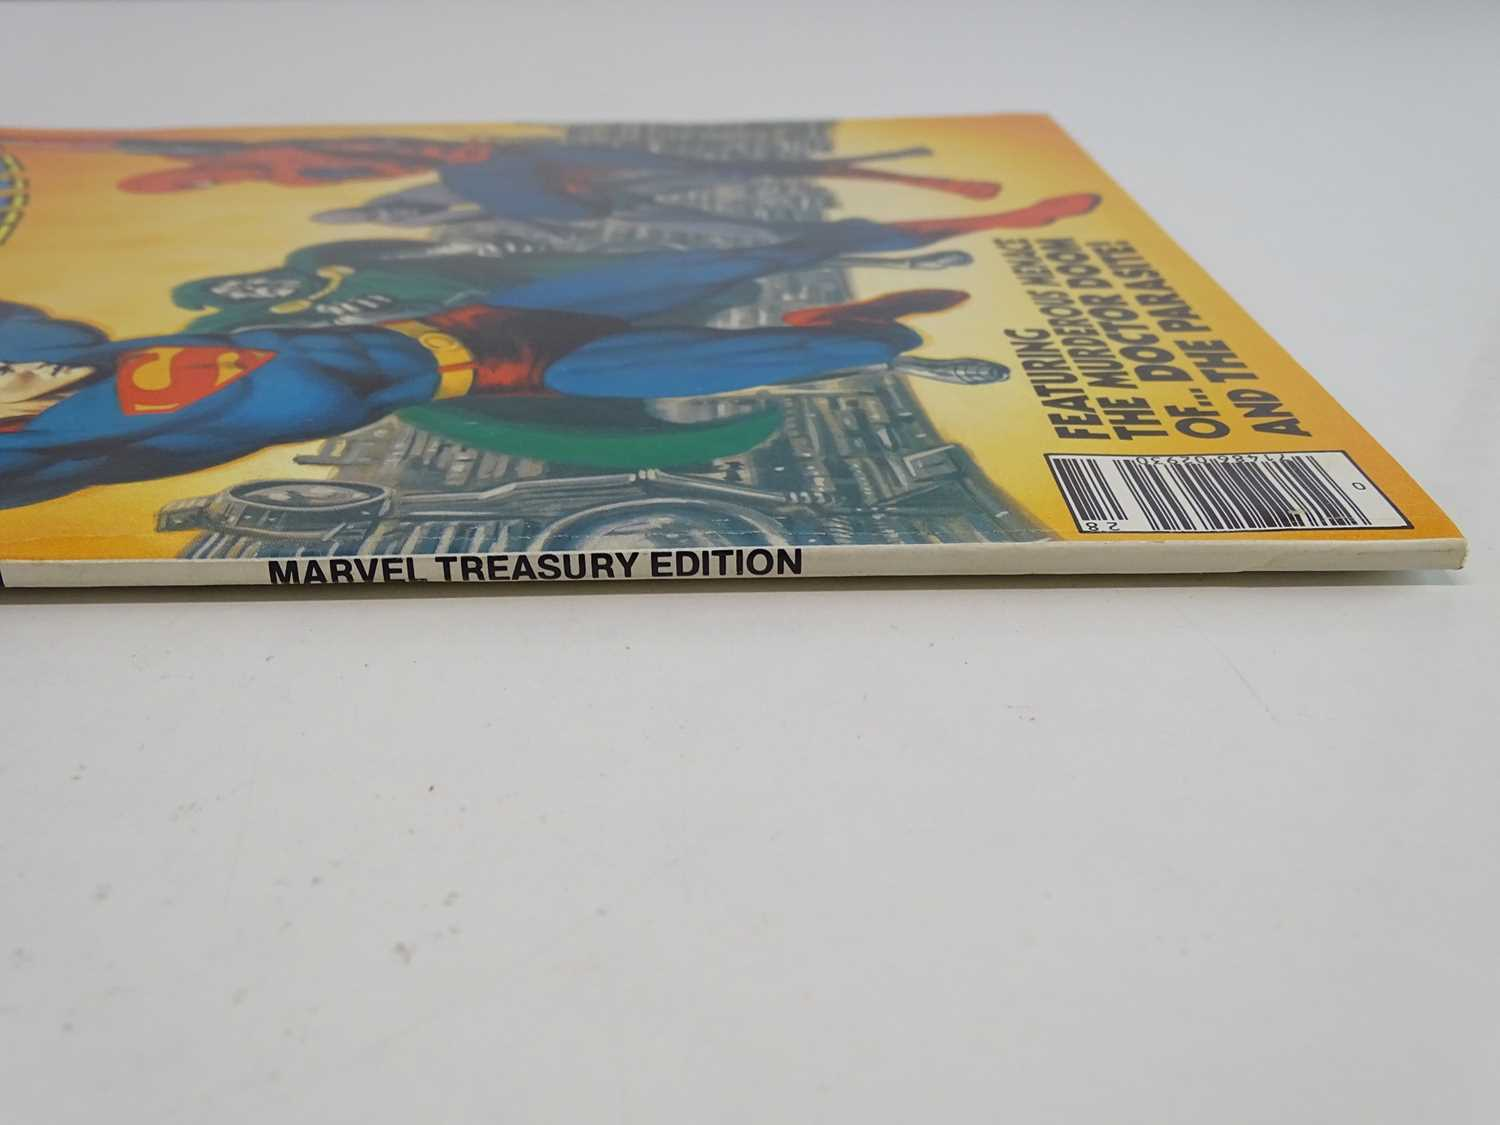 SUPERMAN AND SPIDER-MAN: COLLECTORS EDITION (1981 - MARVEL/DC) Special edition over-sized issue - Image 9 of 9